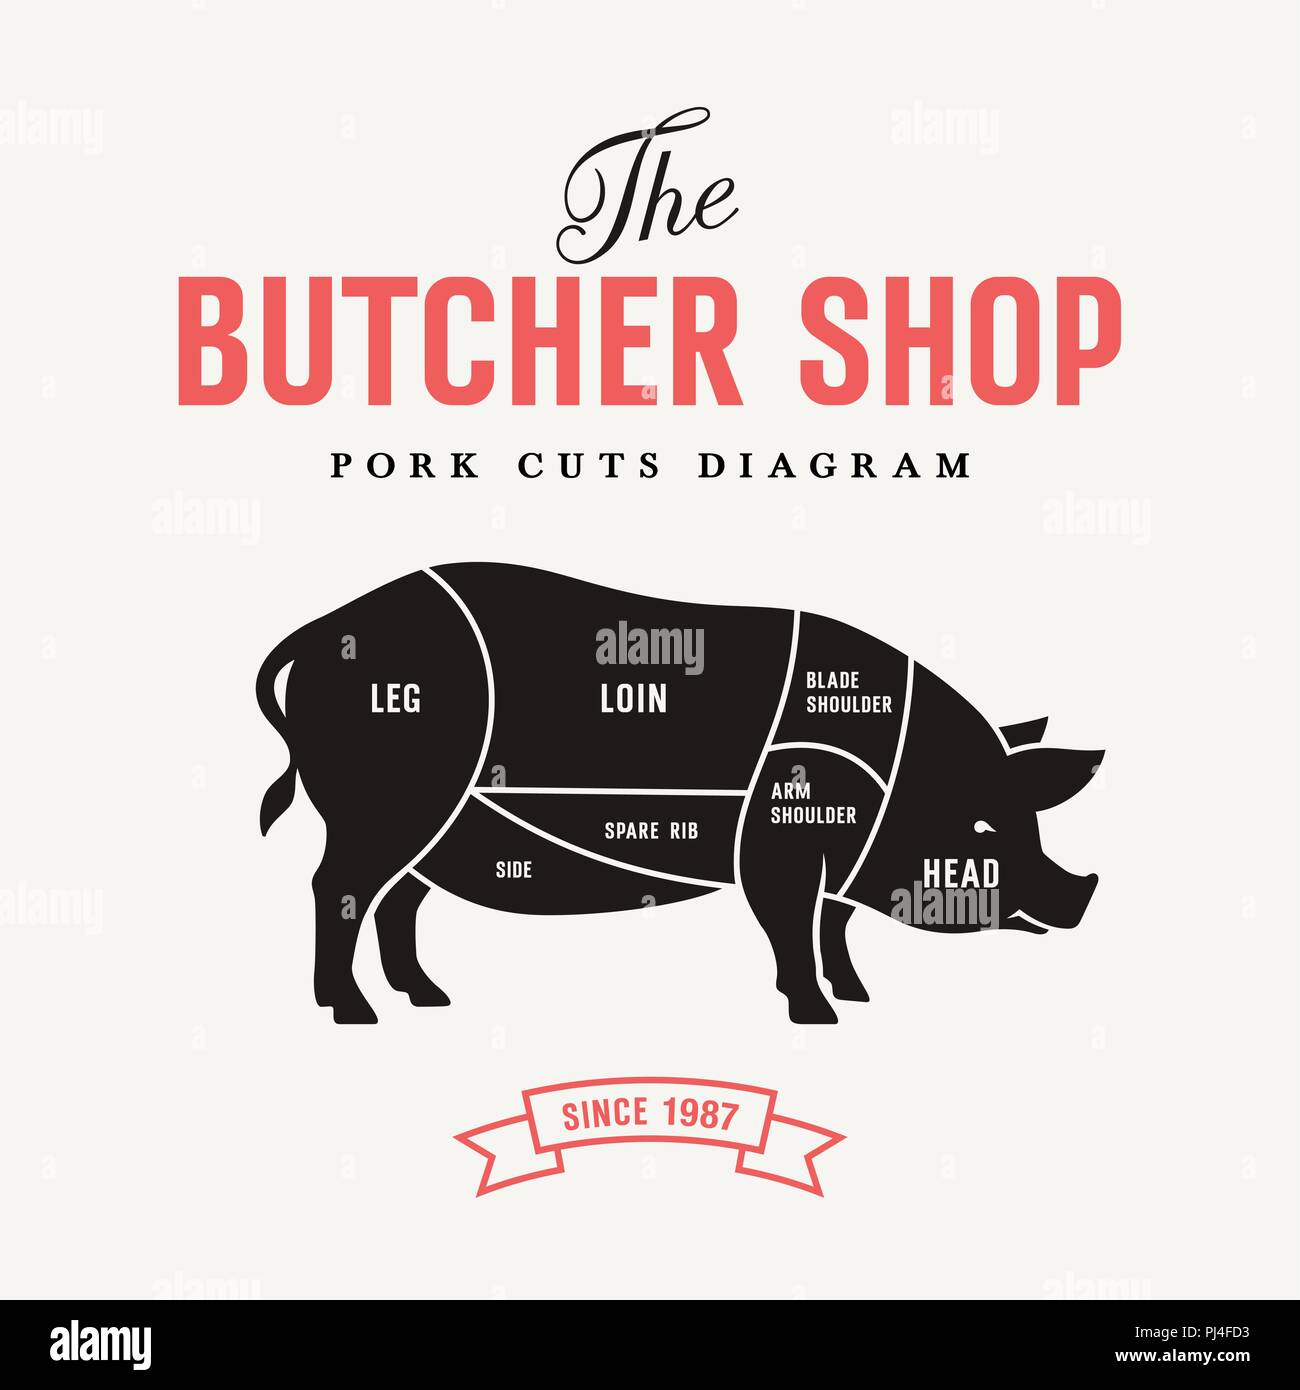 pork butcher cuts diagram stratocaster wiring 5 way switch vector illustration for shop and farm market